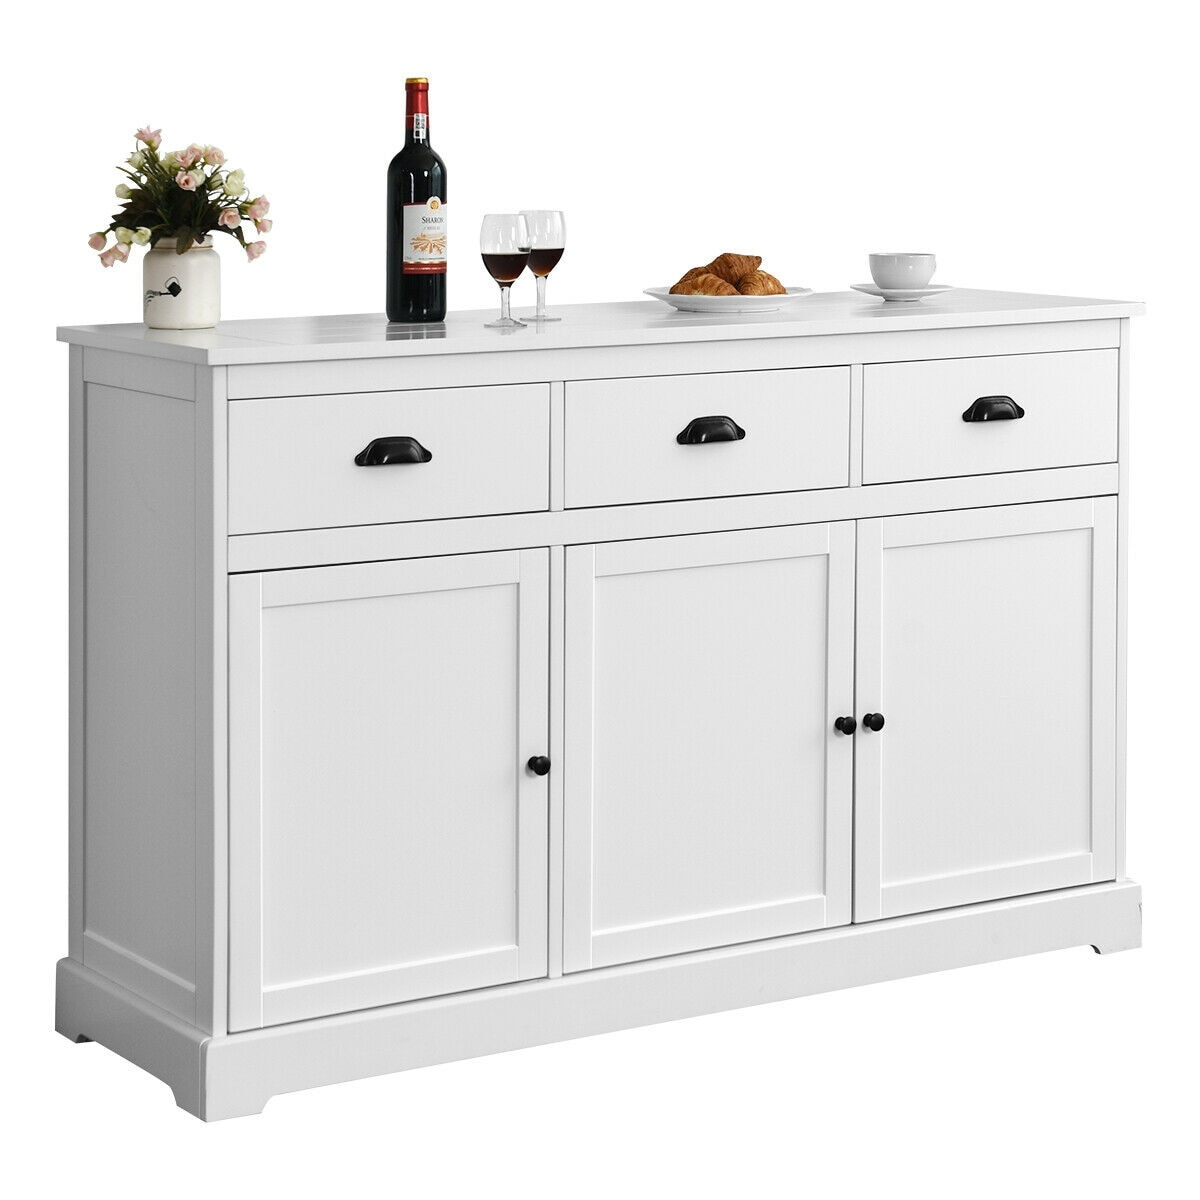 Shop Black Friday Deals On Gymax 3 Drawers Sideboard Buffet Cabinet Console Table Kitchen Storage Overstock 27746613